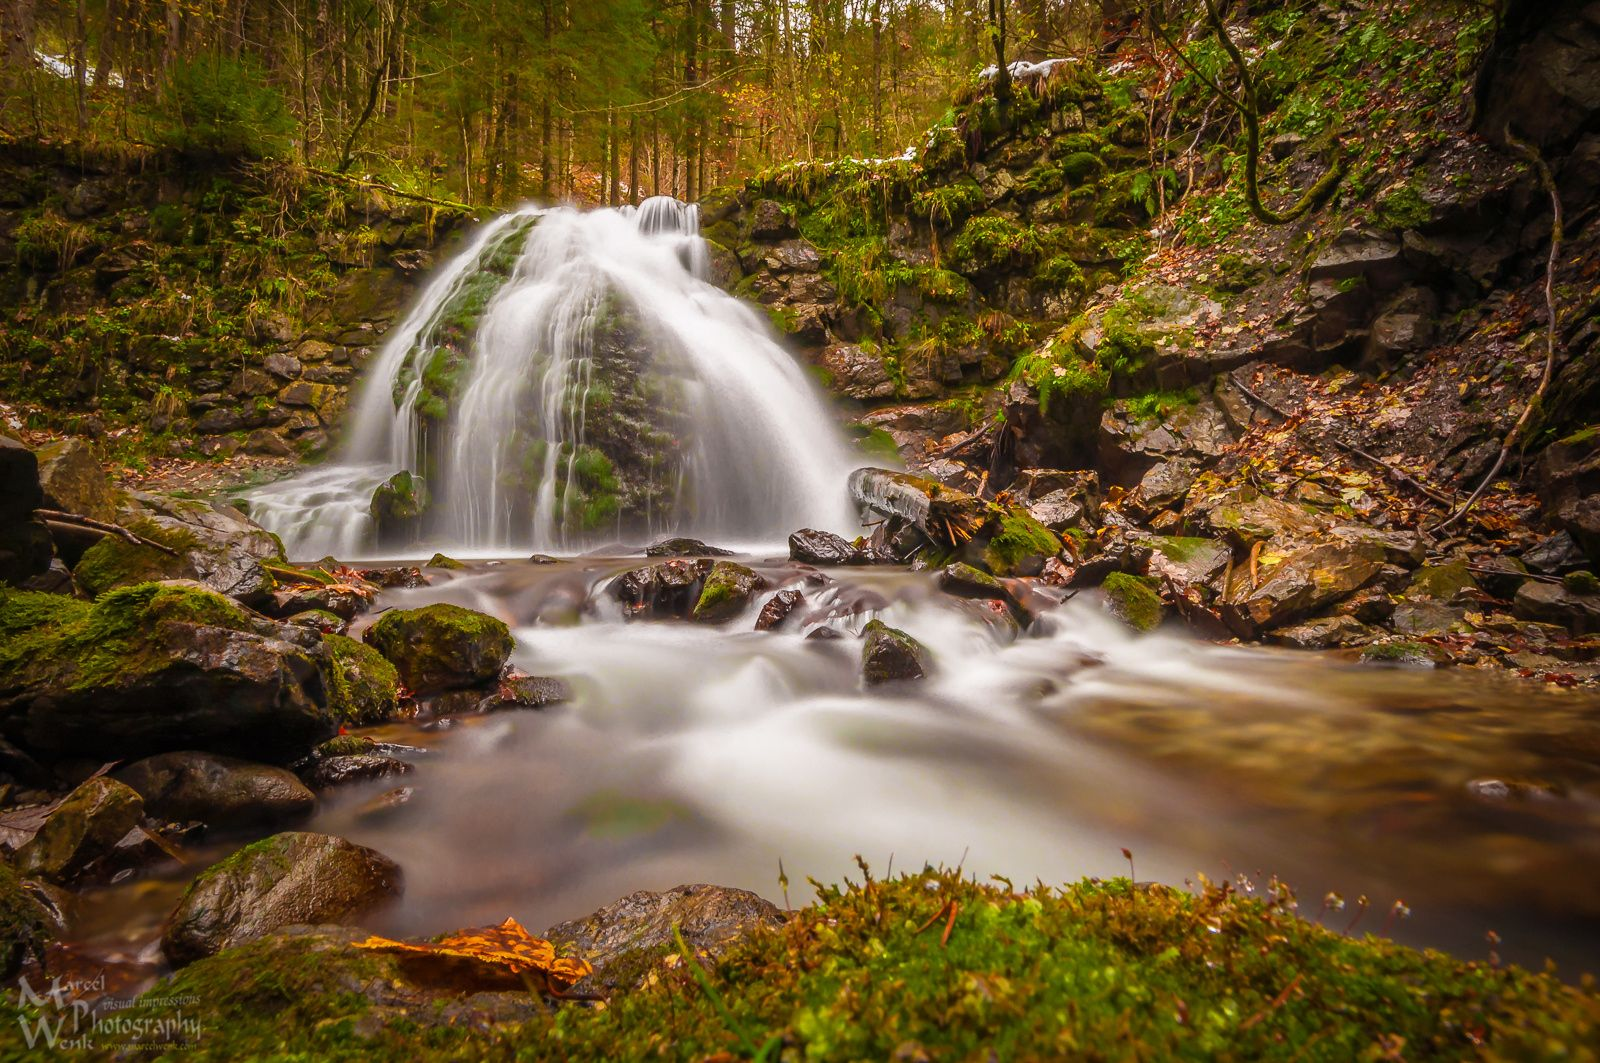 """Waterfall Geisalpbach - The lower waterfall of the creek """"Geisalpbach"""" in late Autumn in Bavaria near Oberstdorf. As you can see I like waterfalls very much ;) **************** More pictures: <a href=""""https://www.marcelwenk.com"""">Take a look at my homepage</a> **************** Copyright: Marcel Wenk"""